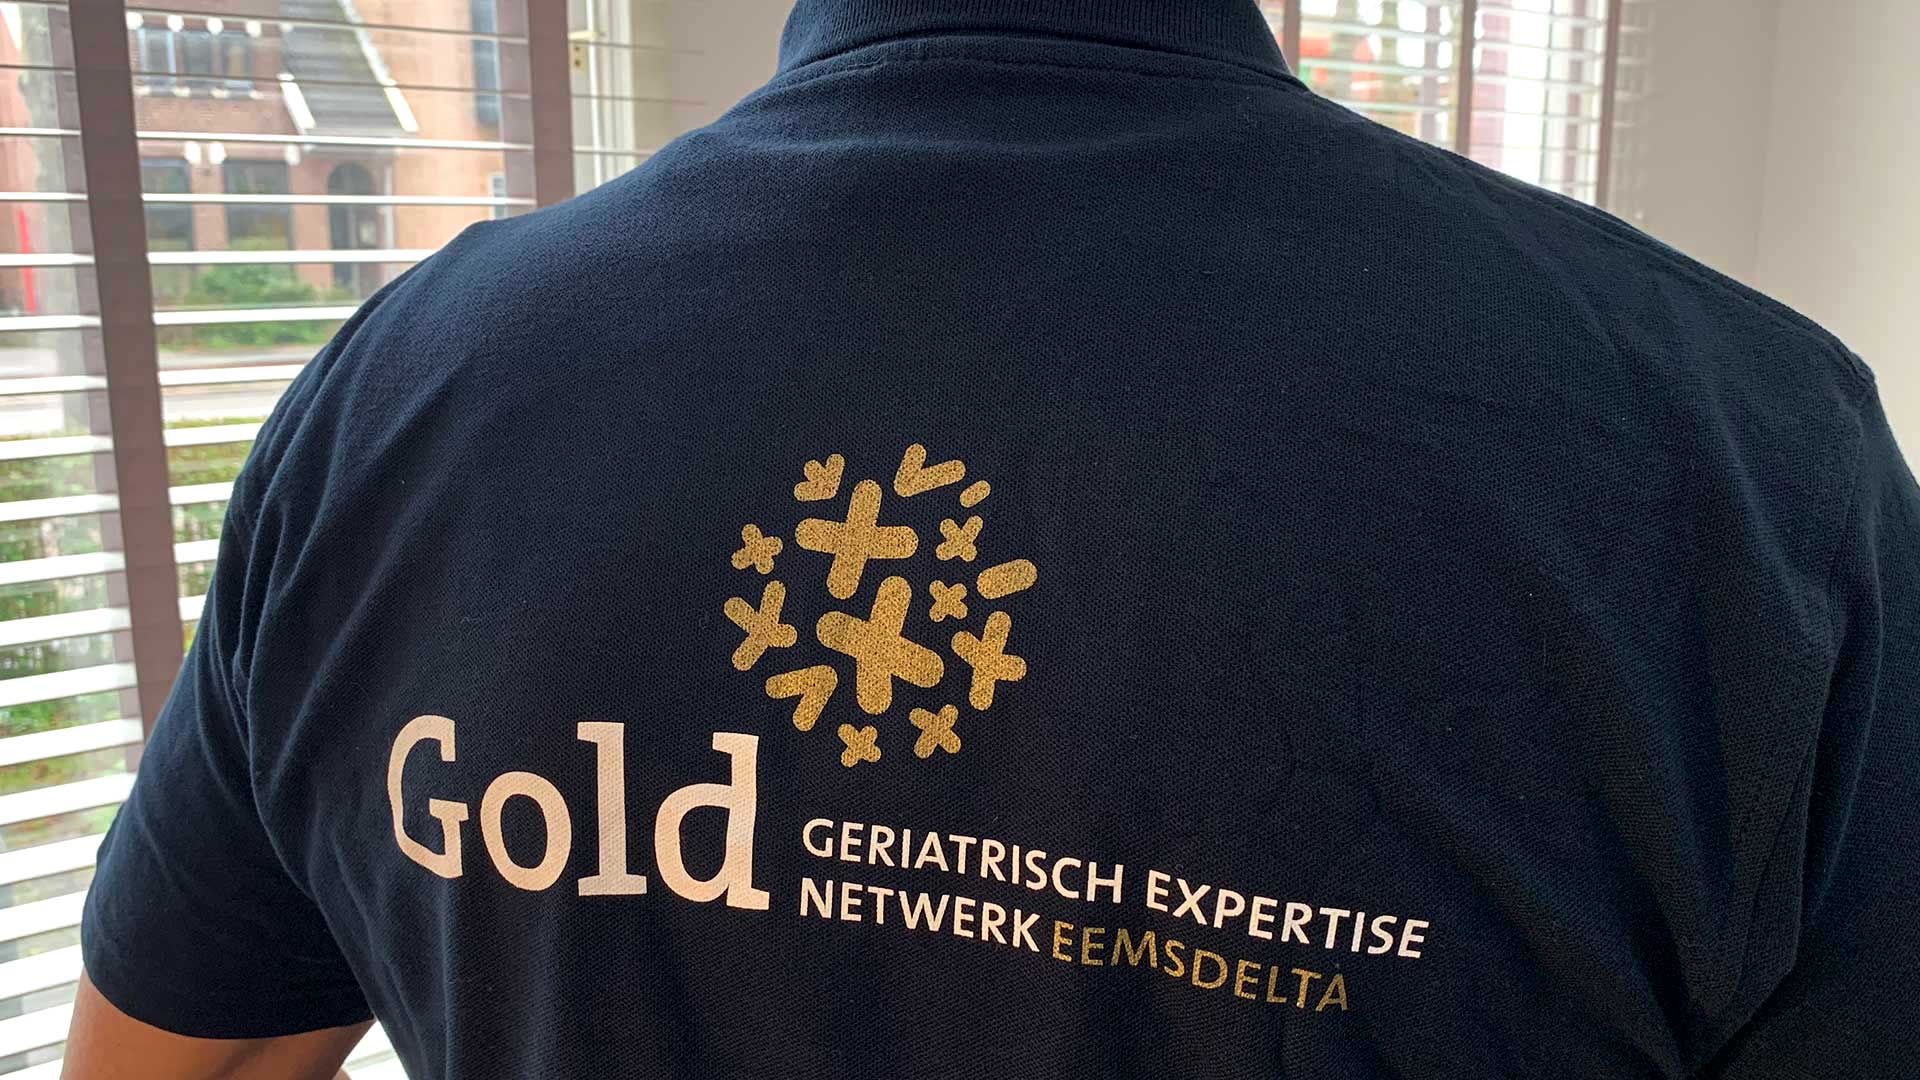 Polo-bedrukken-gold-2